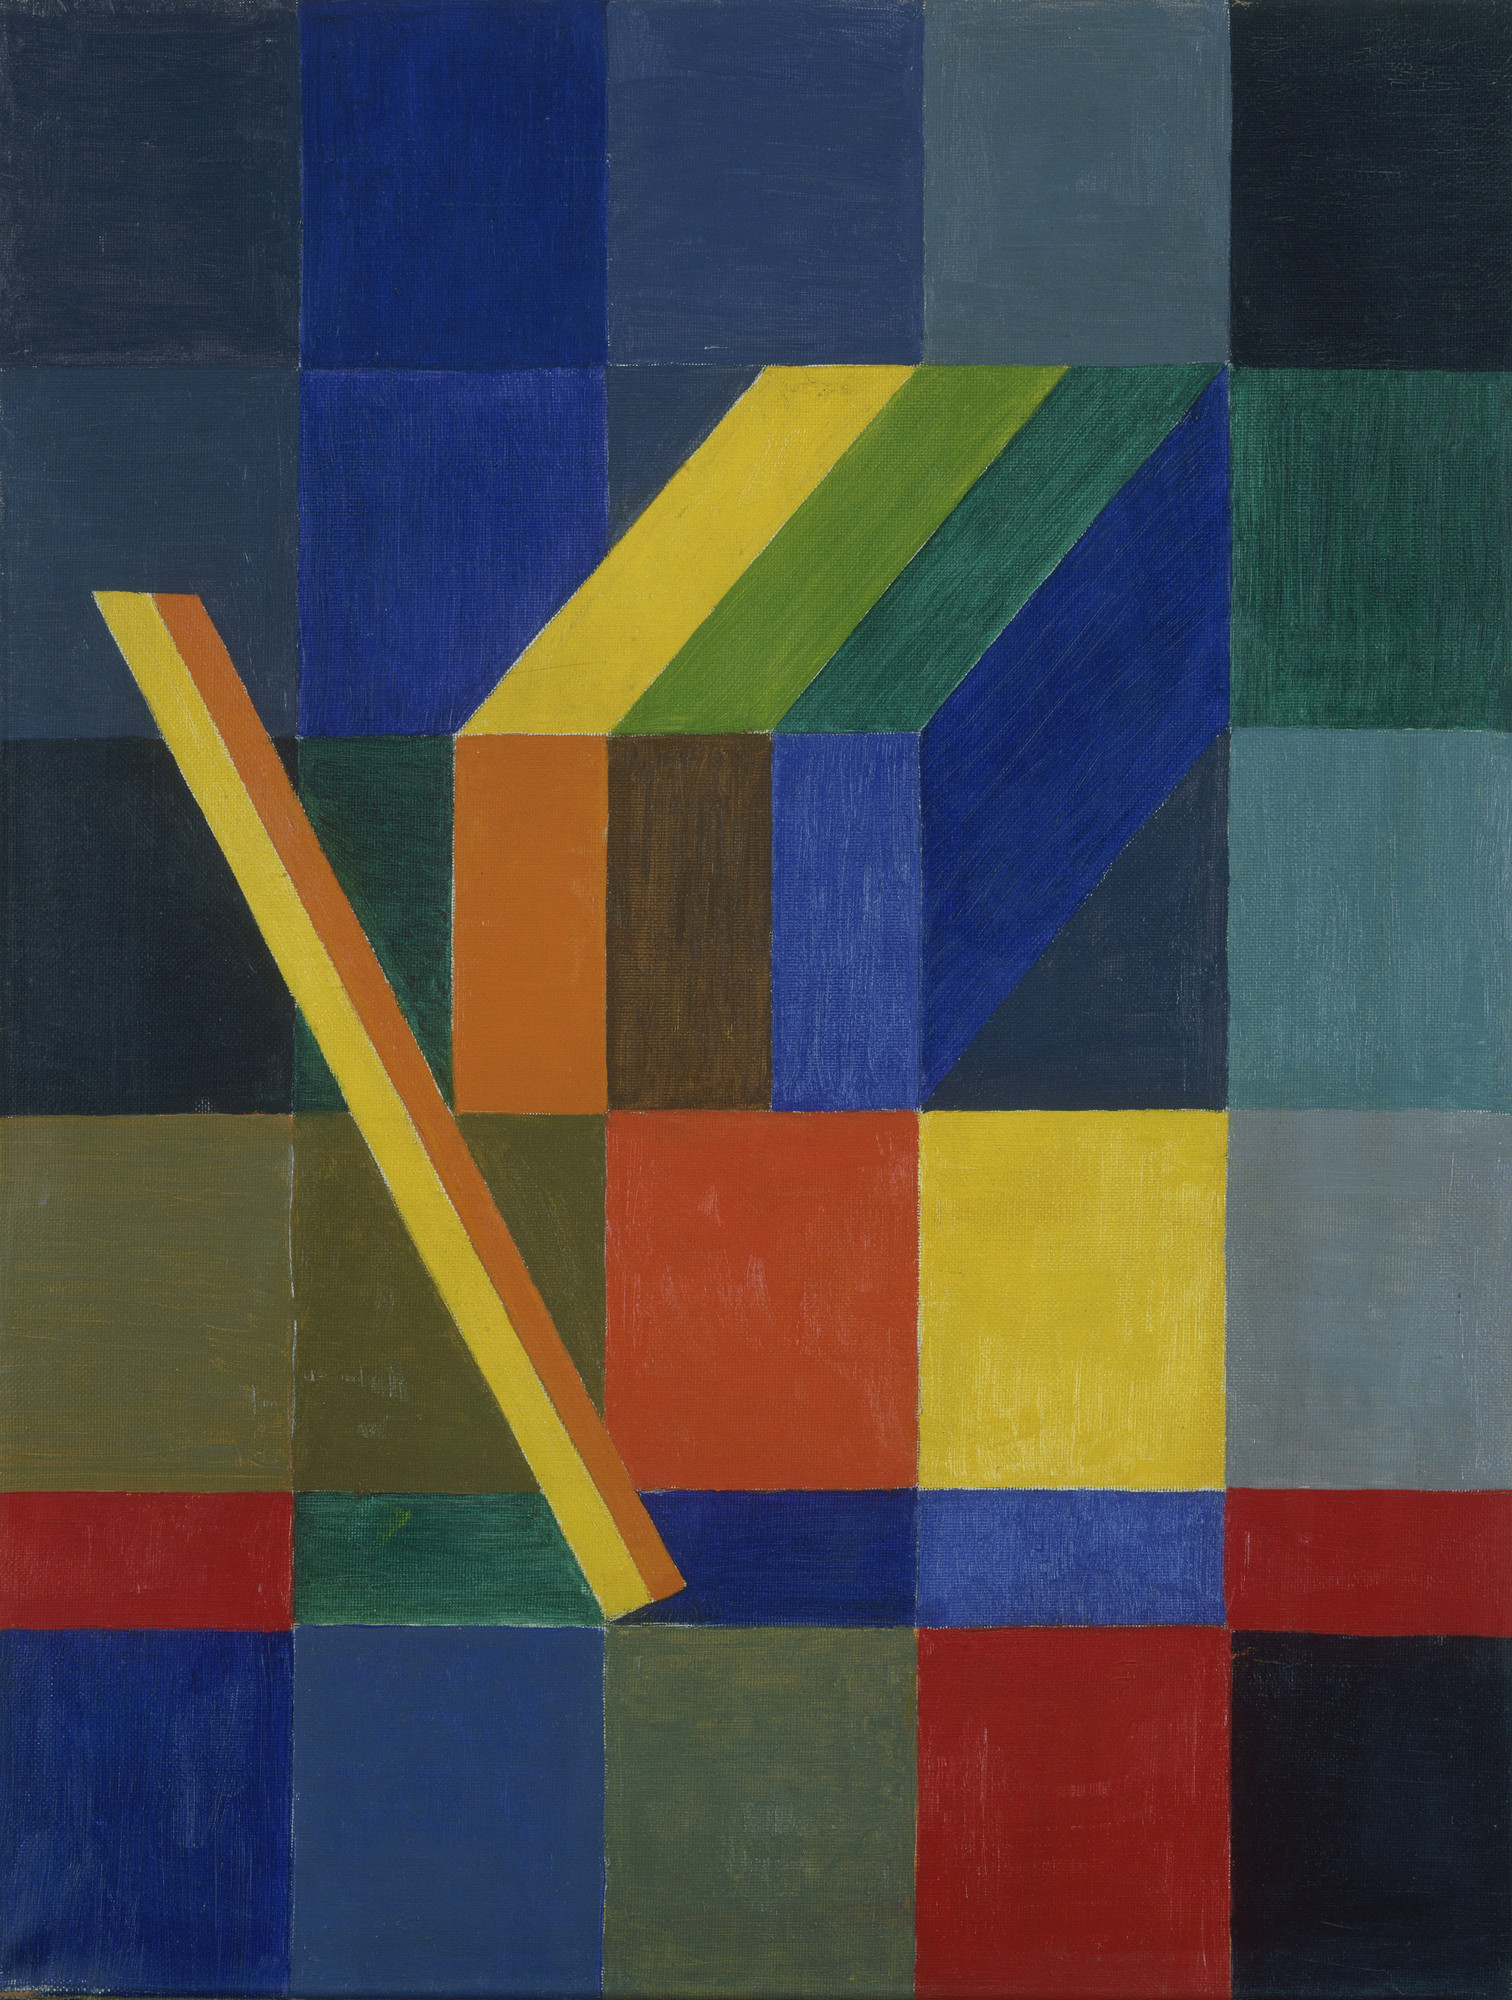 Johannes Itten. Space Composition, I. 1944